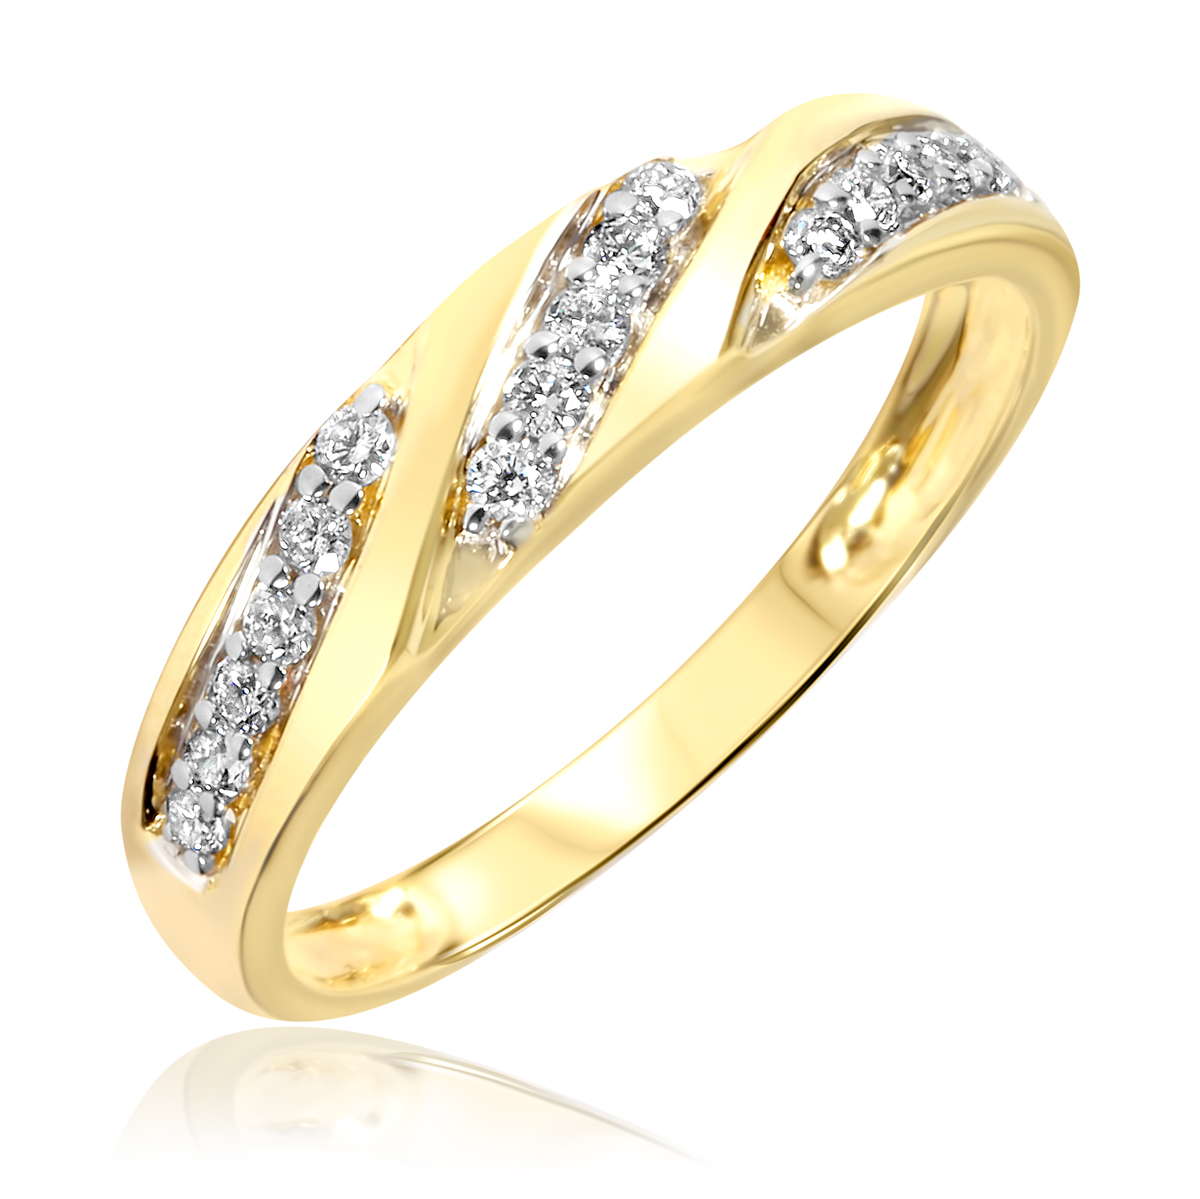 1 4 carat t w diamond women 39 s wedding ring 14k yellow gold my trio rings bt168y14kl. Black Bedroom Furniture Sets. Home Design Ideas